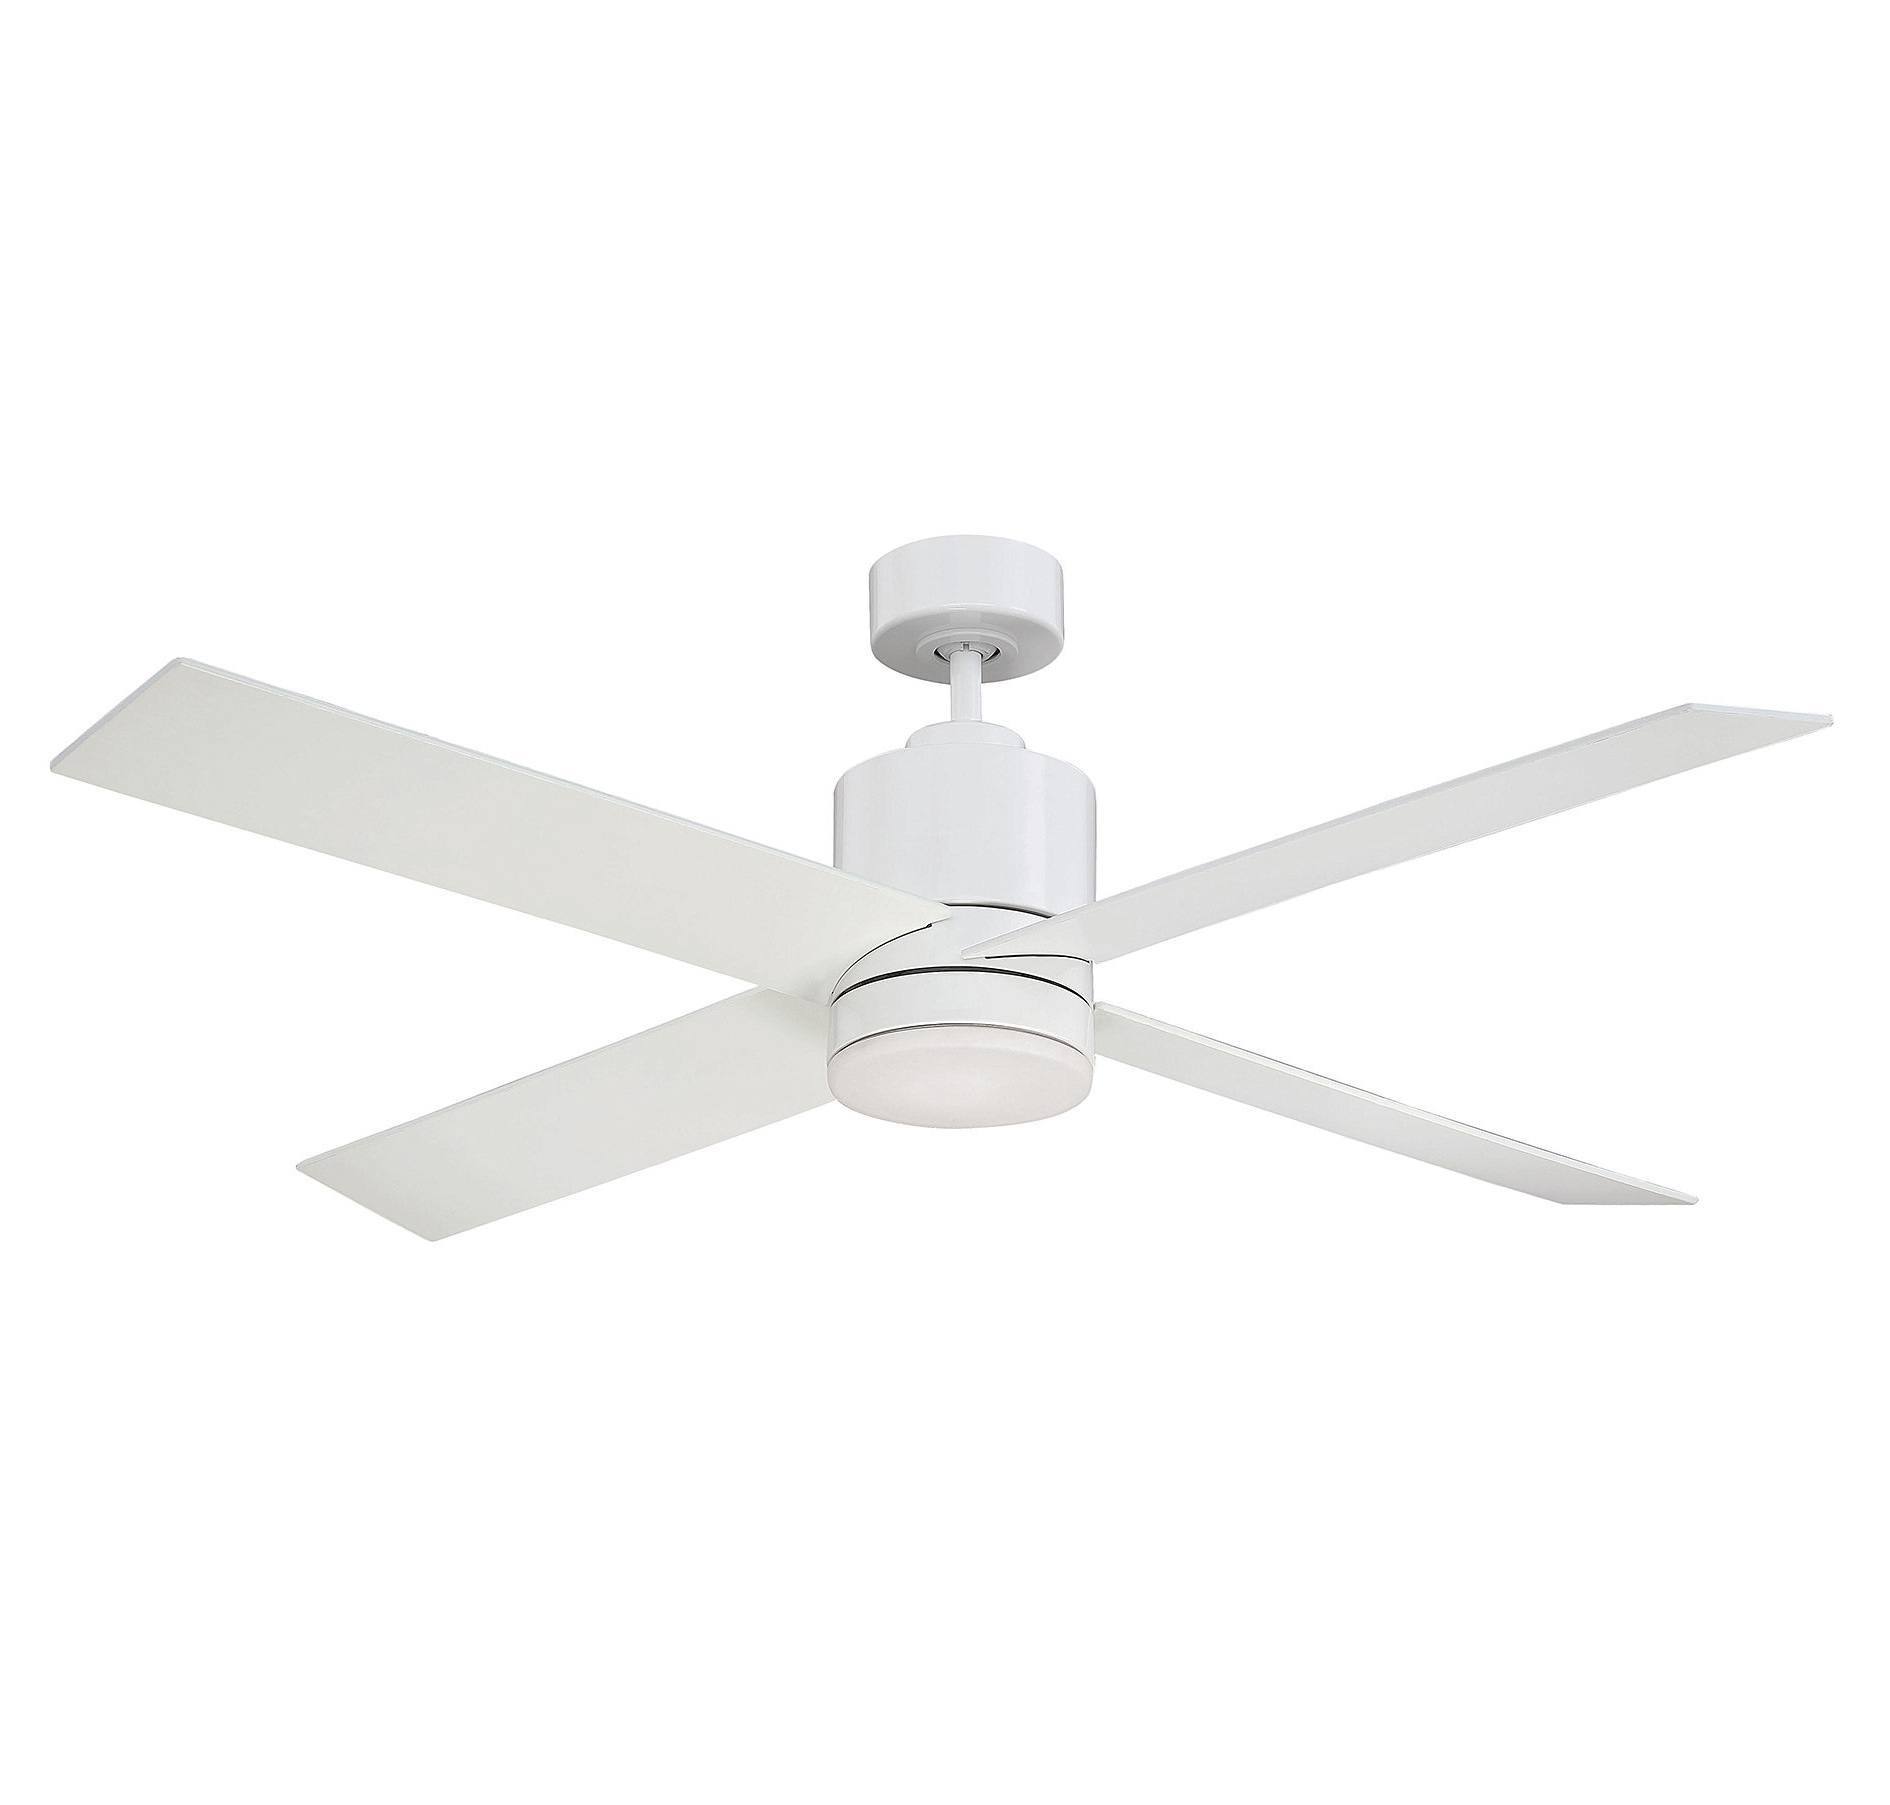 "Favorite 52"" Rinke 4 Blade Ceiling Fan With Remote, Light Kit Included Throughout Aker 3 Blade Led Ceiling Fans (View 10 of 20)"